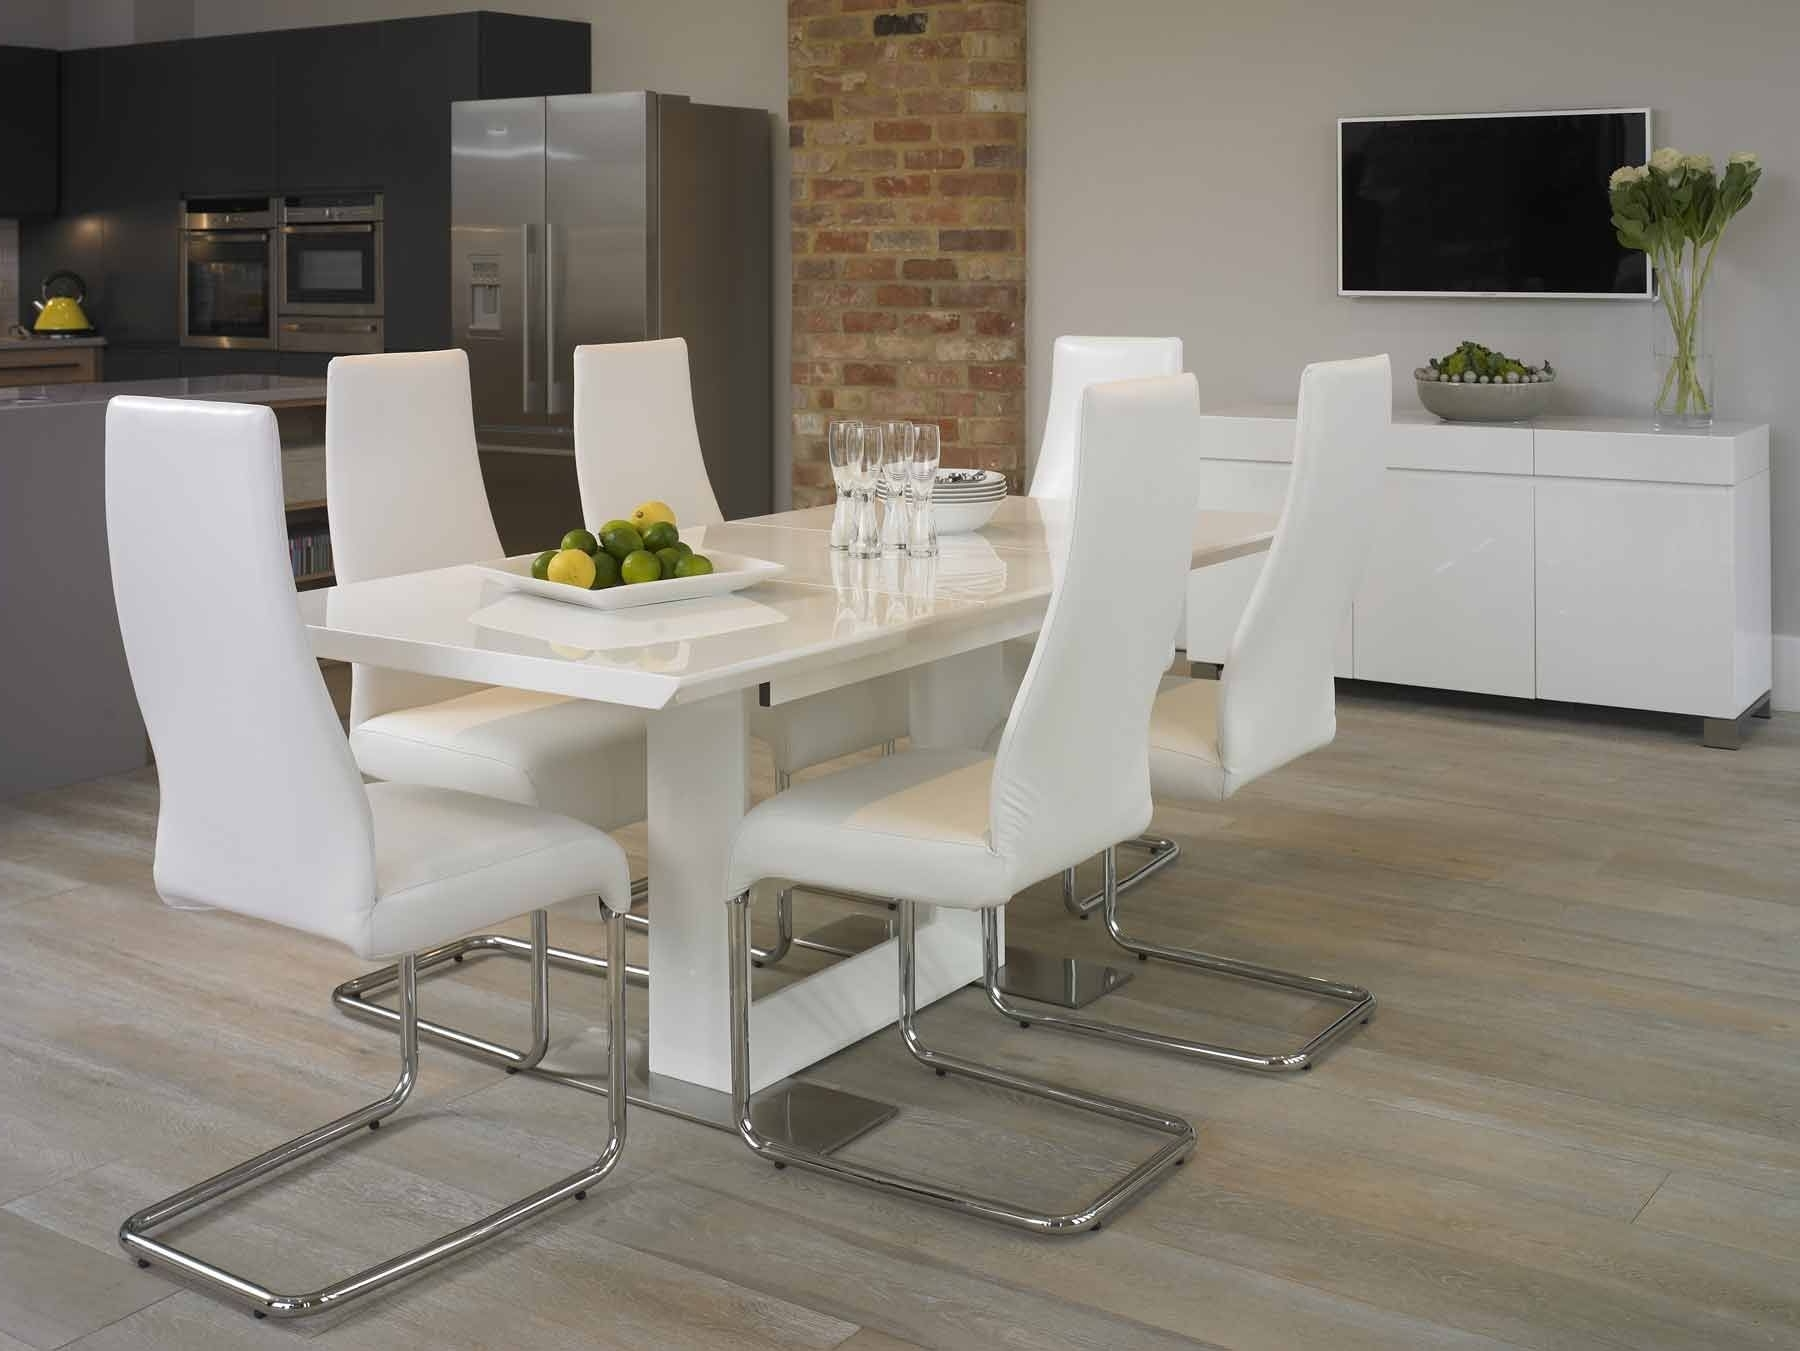 Ideas Intended For Oval White High Gloss Dining Tables (Gallery 22 of 25)